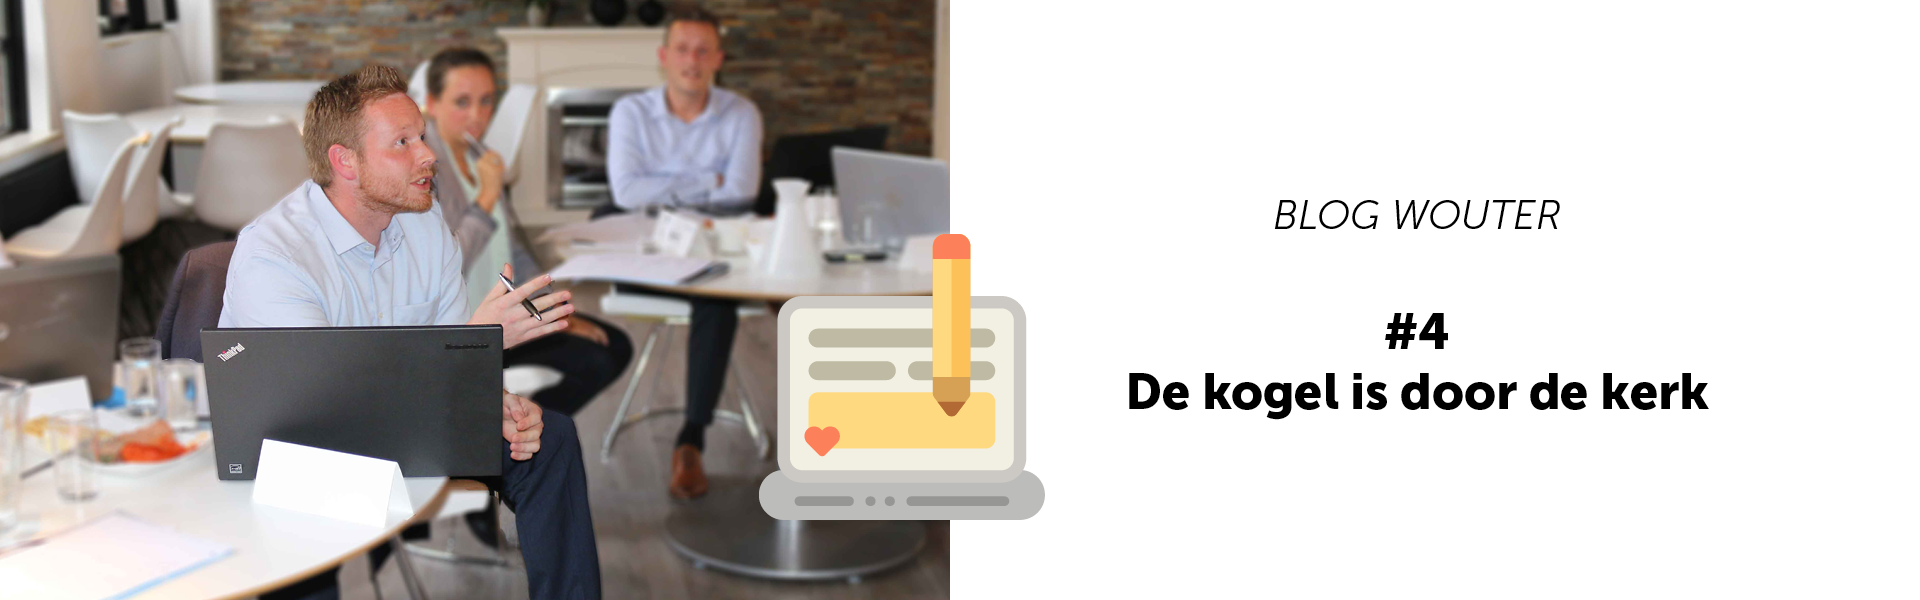 BLOG Wouter 4